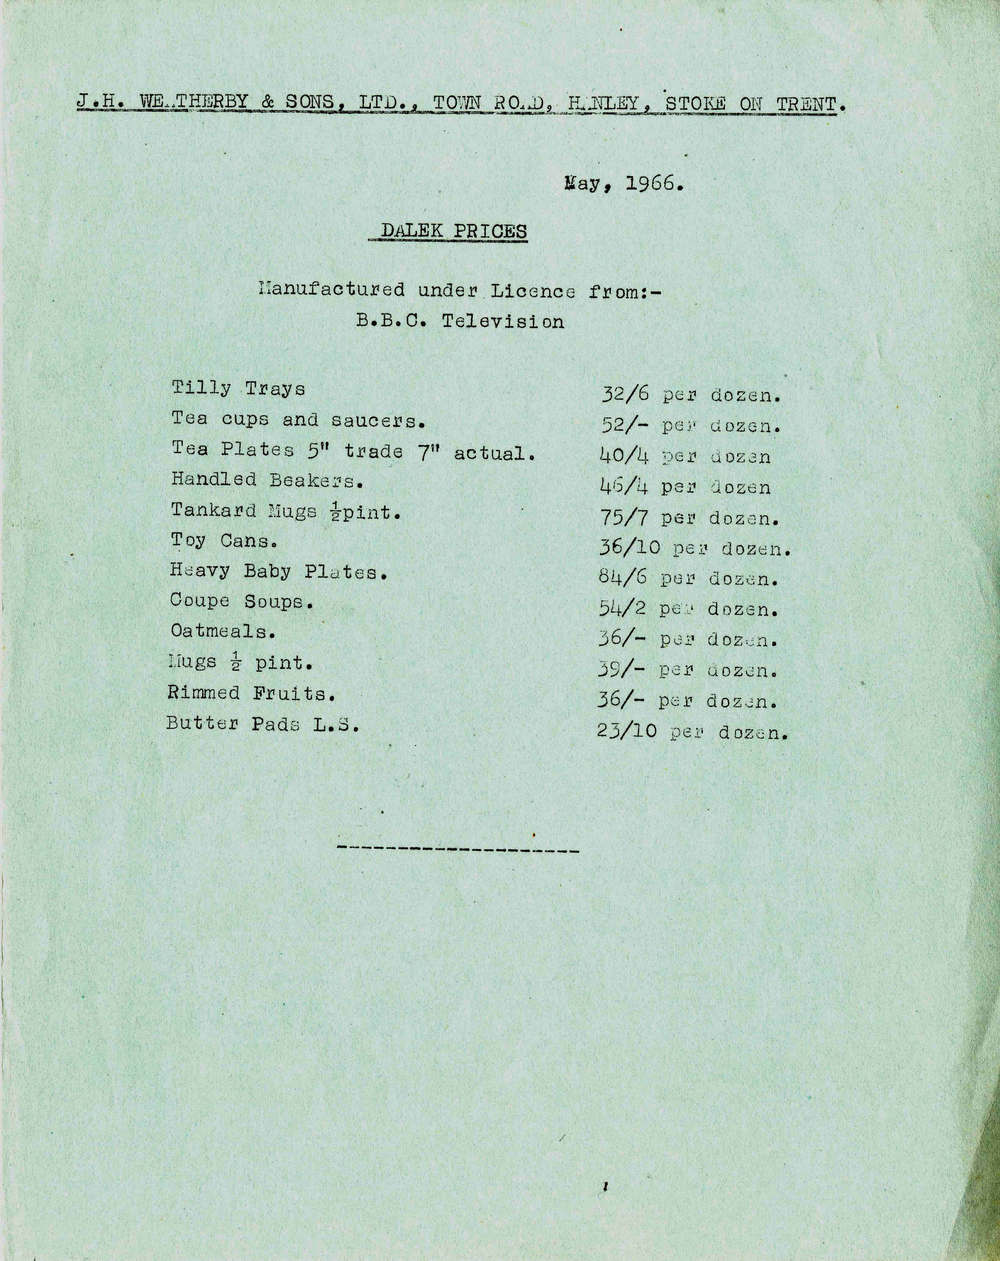 J H Weatherby and Sons Ltd., Dalek pottery trade price list